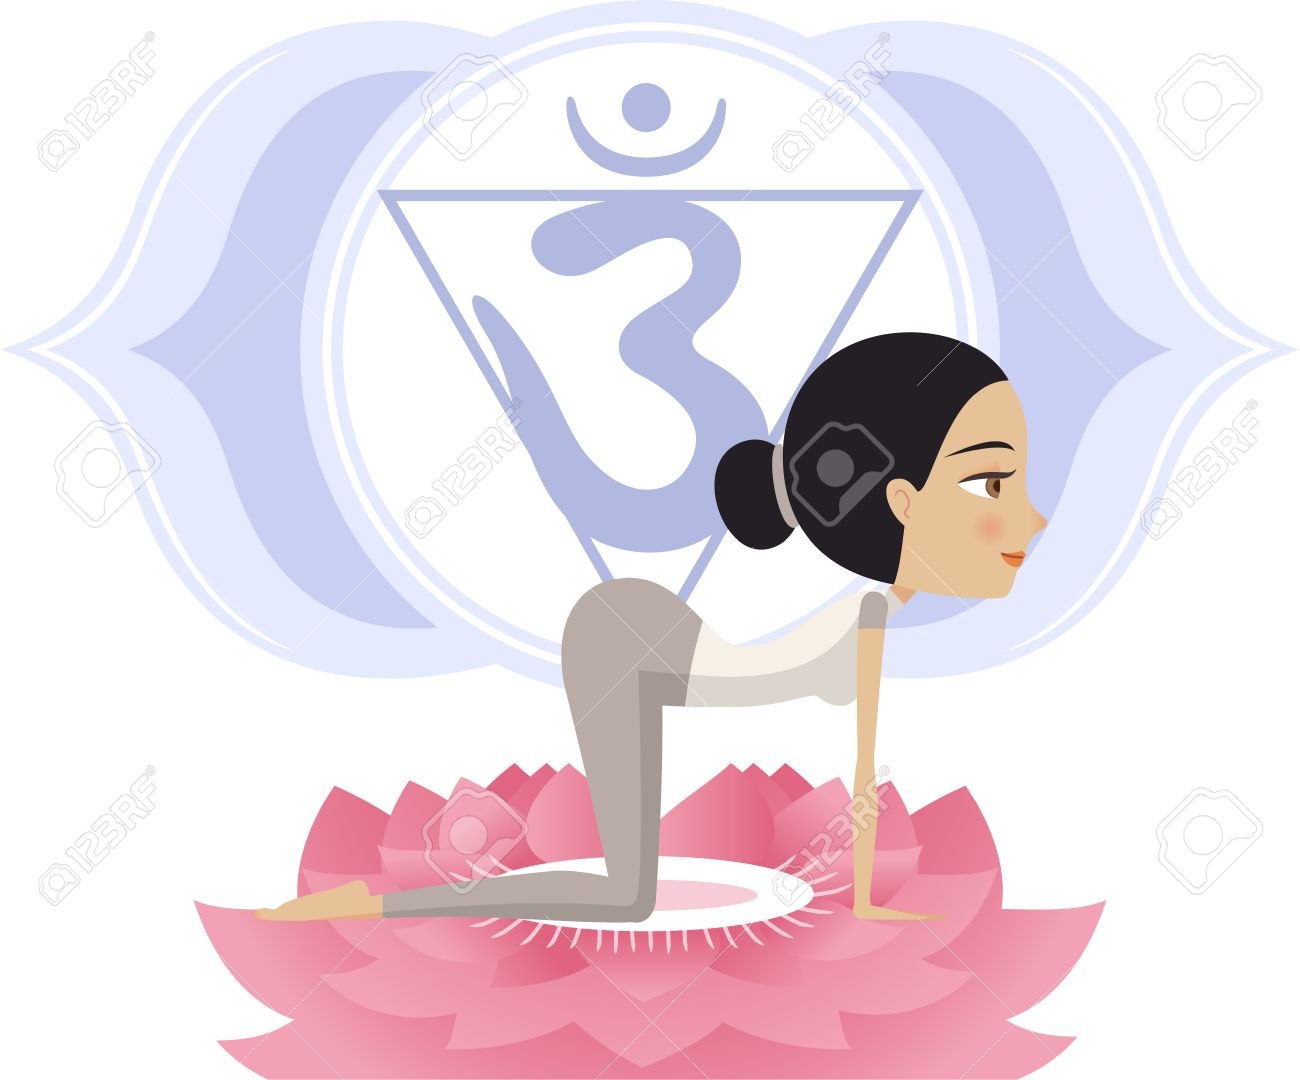 Yoga Asana Practice Posture On A Lotus Flower With Om Symbol In